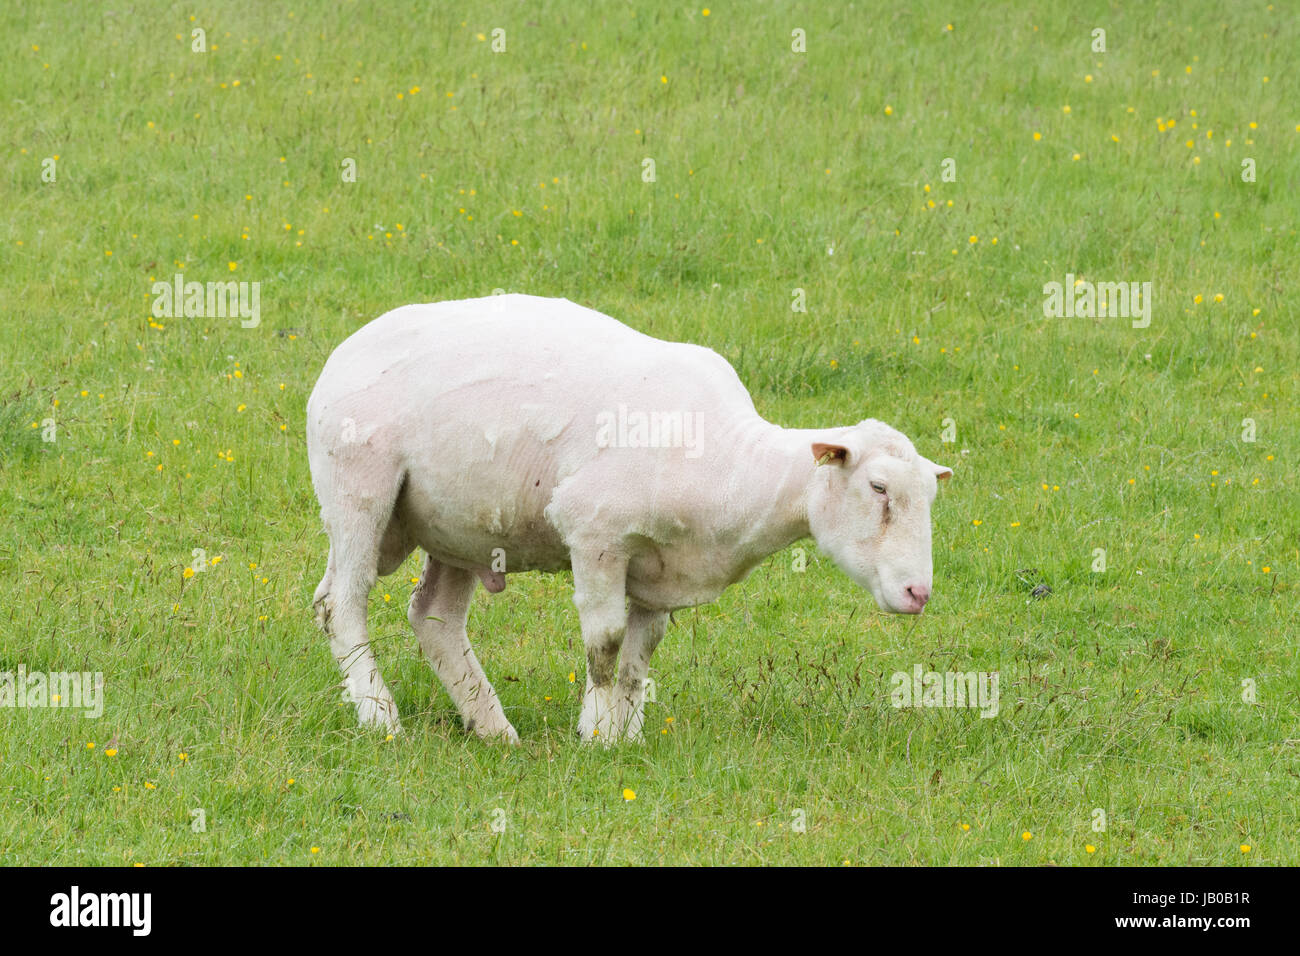 Stirlingshire, Scotland, UK - 8 June 201: UK weather - not a day to be without a coat! A cold, wet and miserable Stock Photo